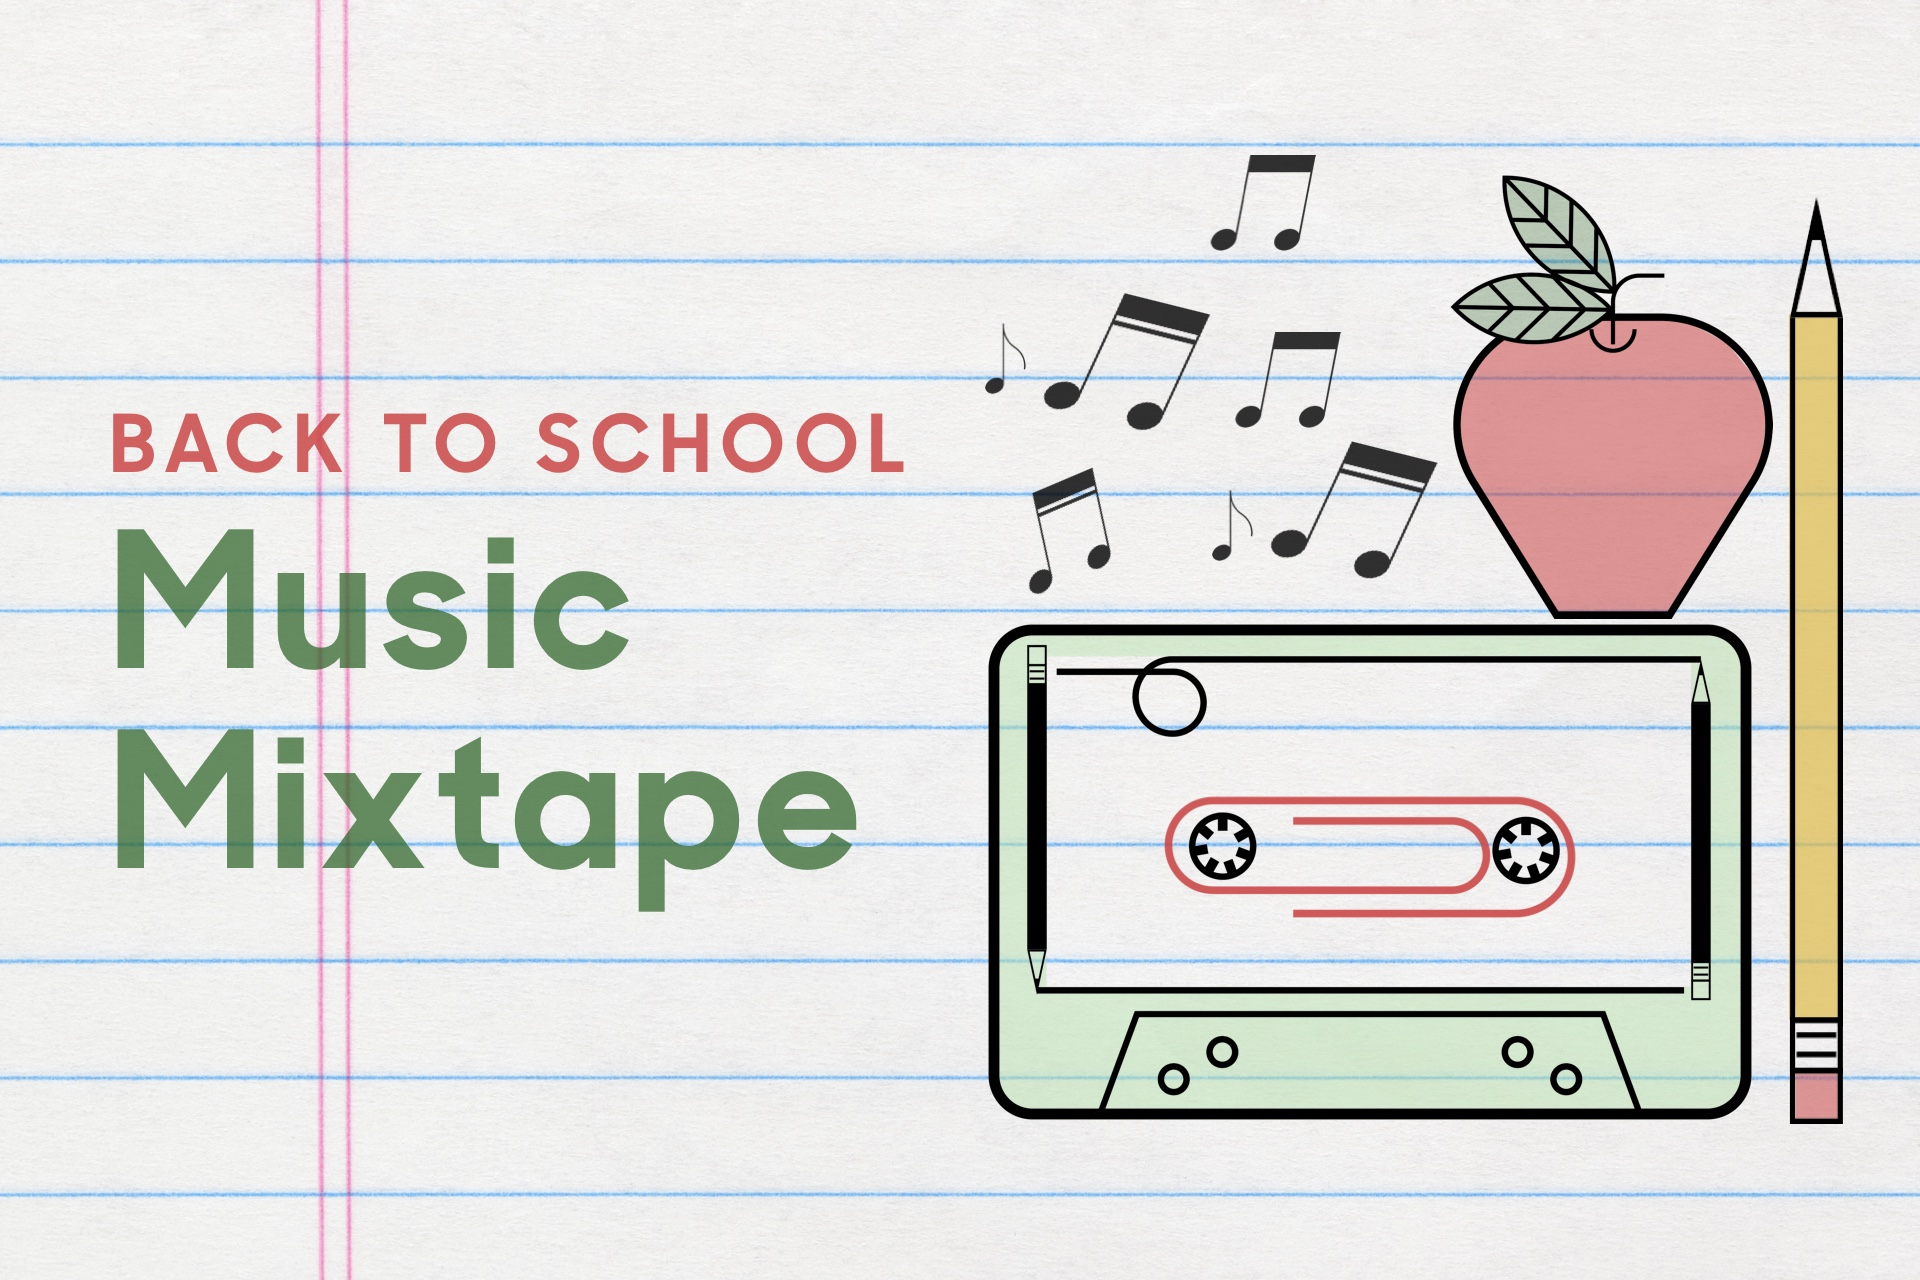 Back_To_School_Music_Mixtape.jpg